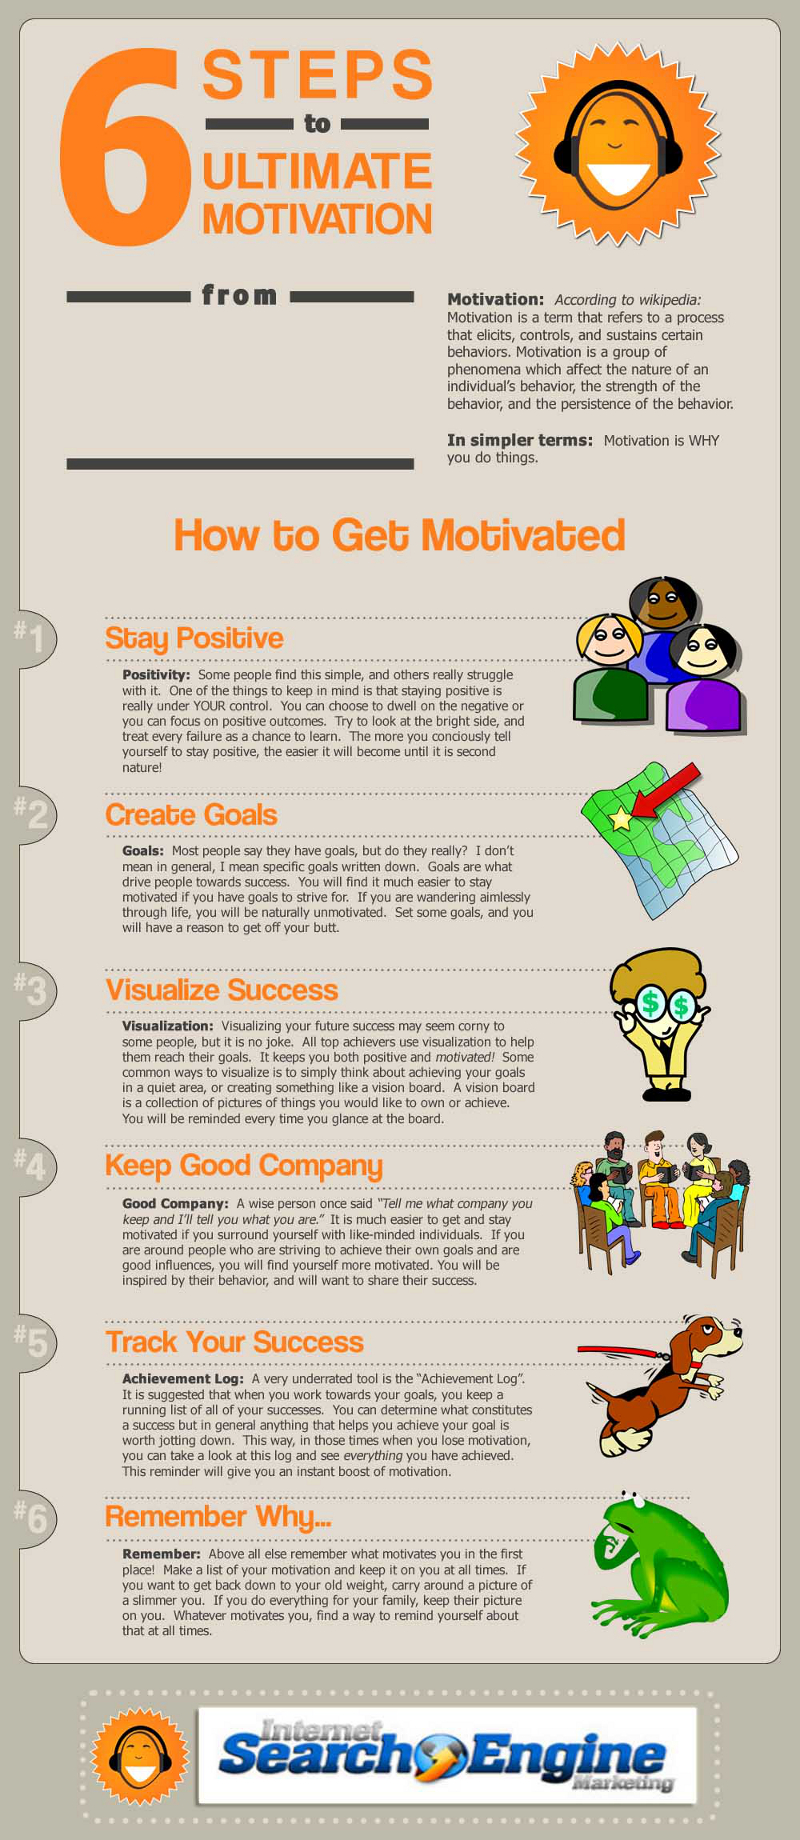 Steps to Getting Motivated